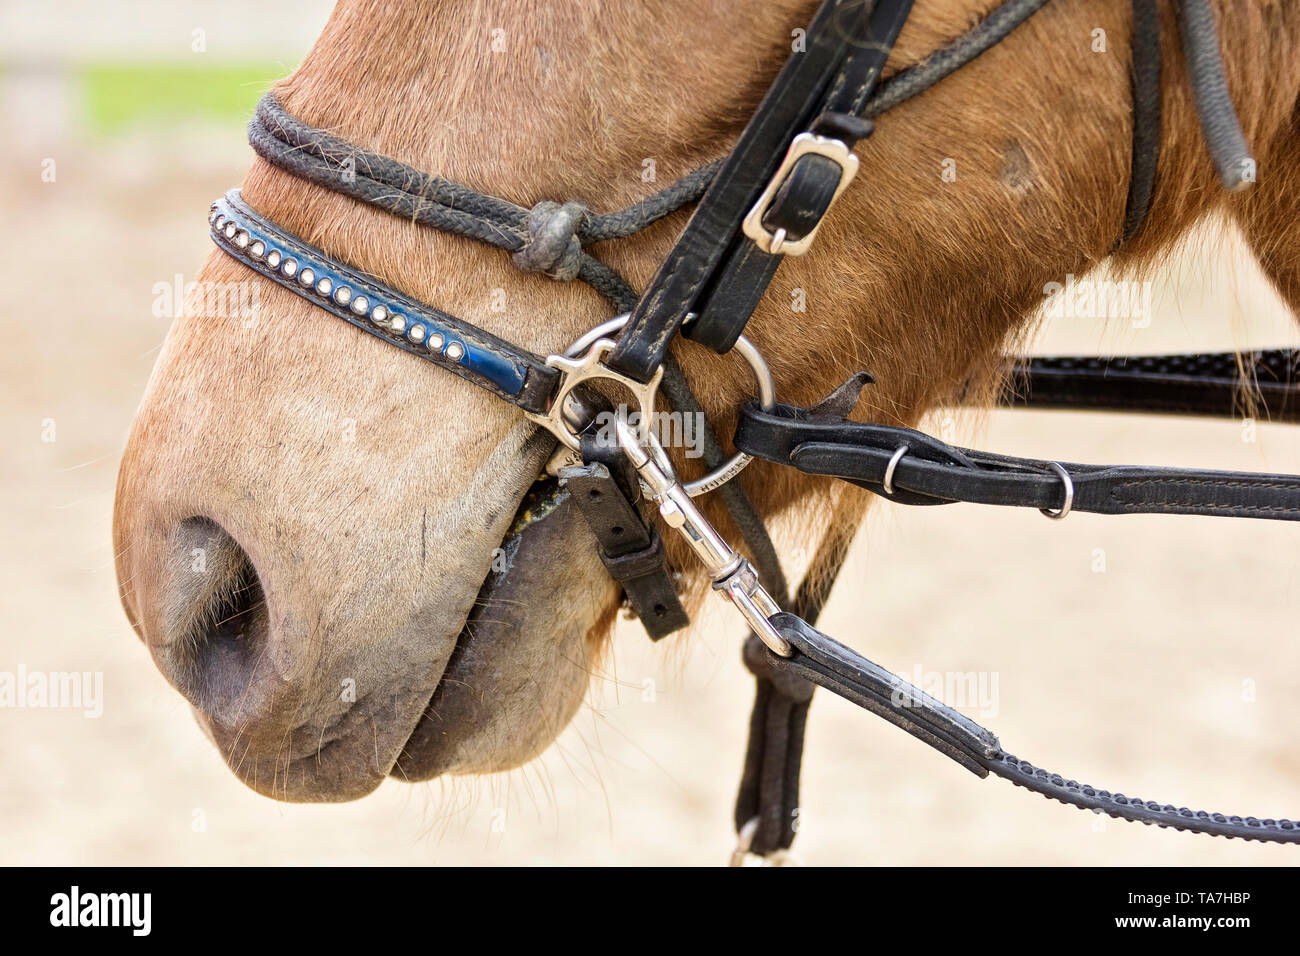 Icelandic Horse. Juvenile dun horse being trained, wearing rope halter, snaffle bit and lunge. Austria - Stock Image